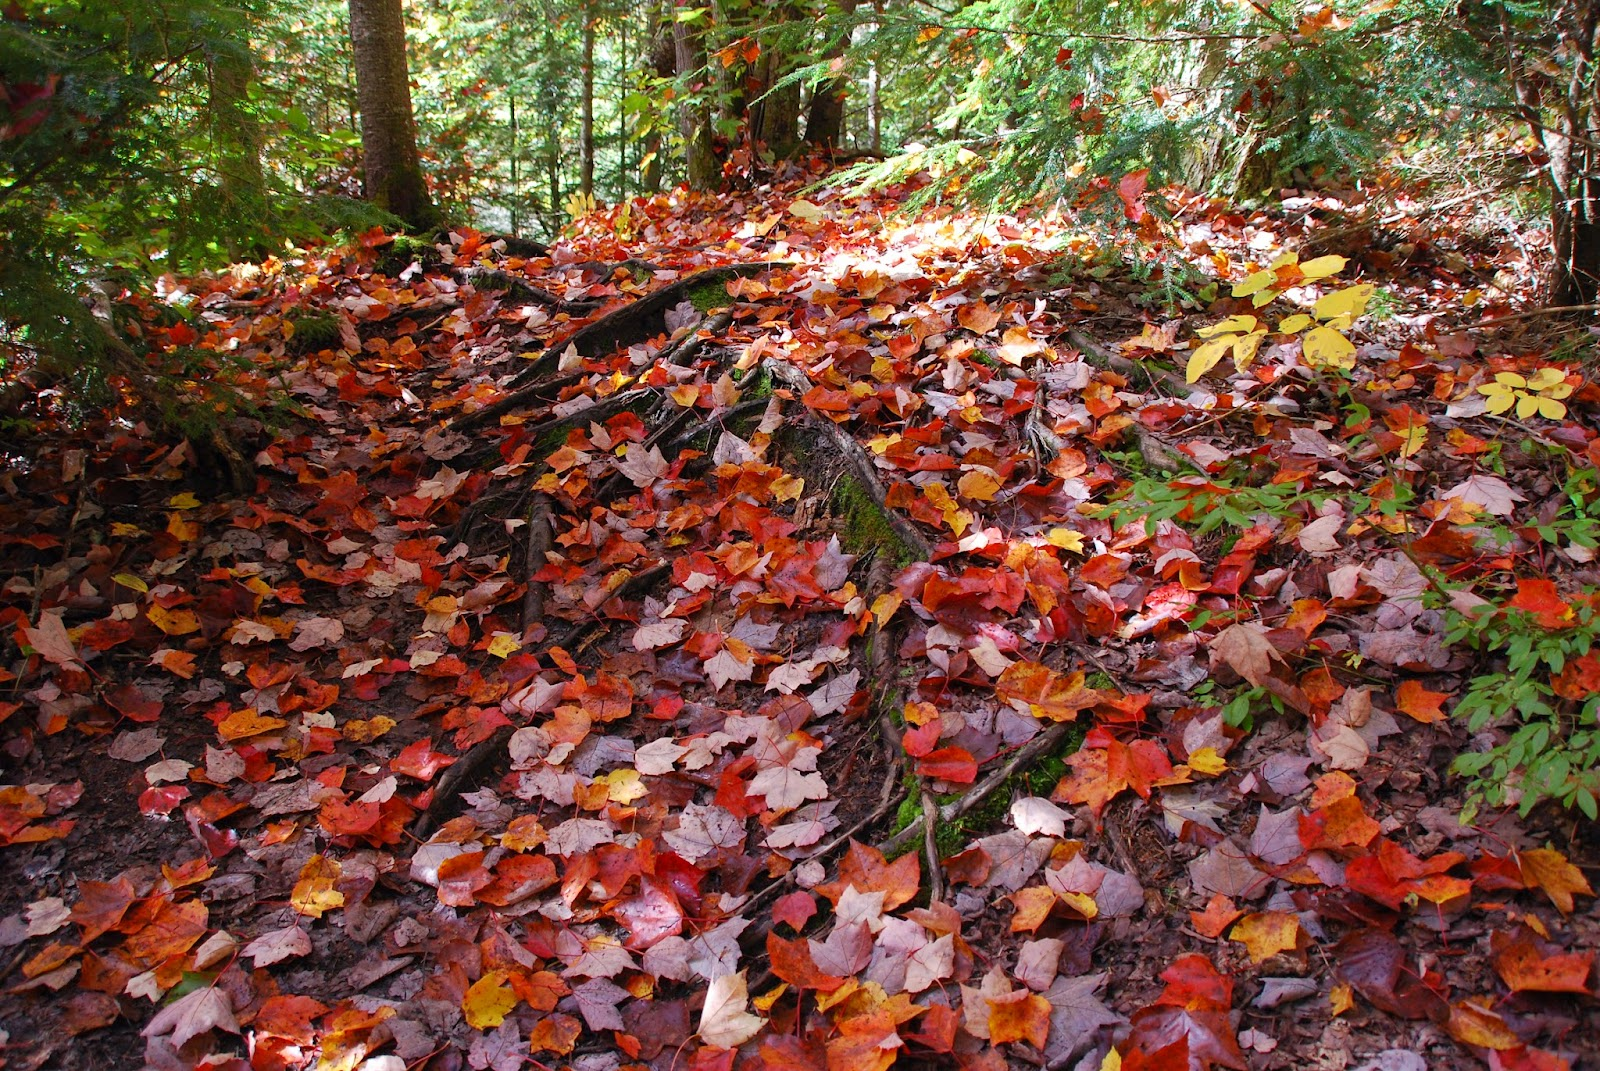 fall leaves cover the ground in the forest